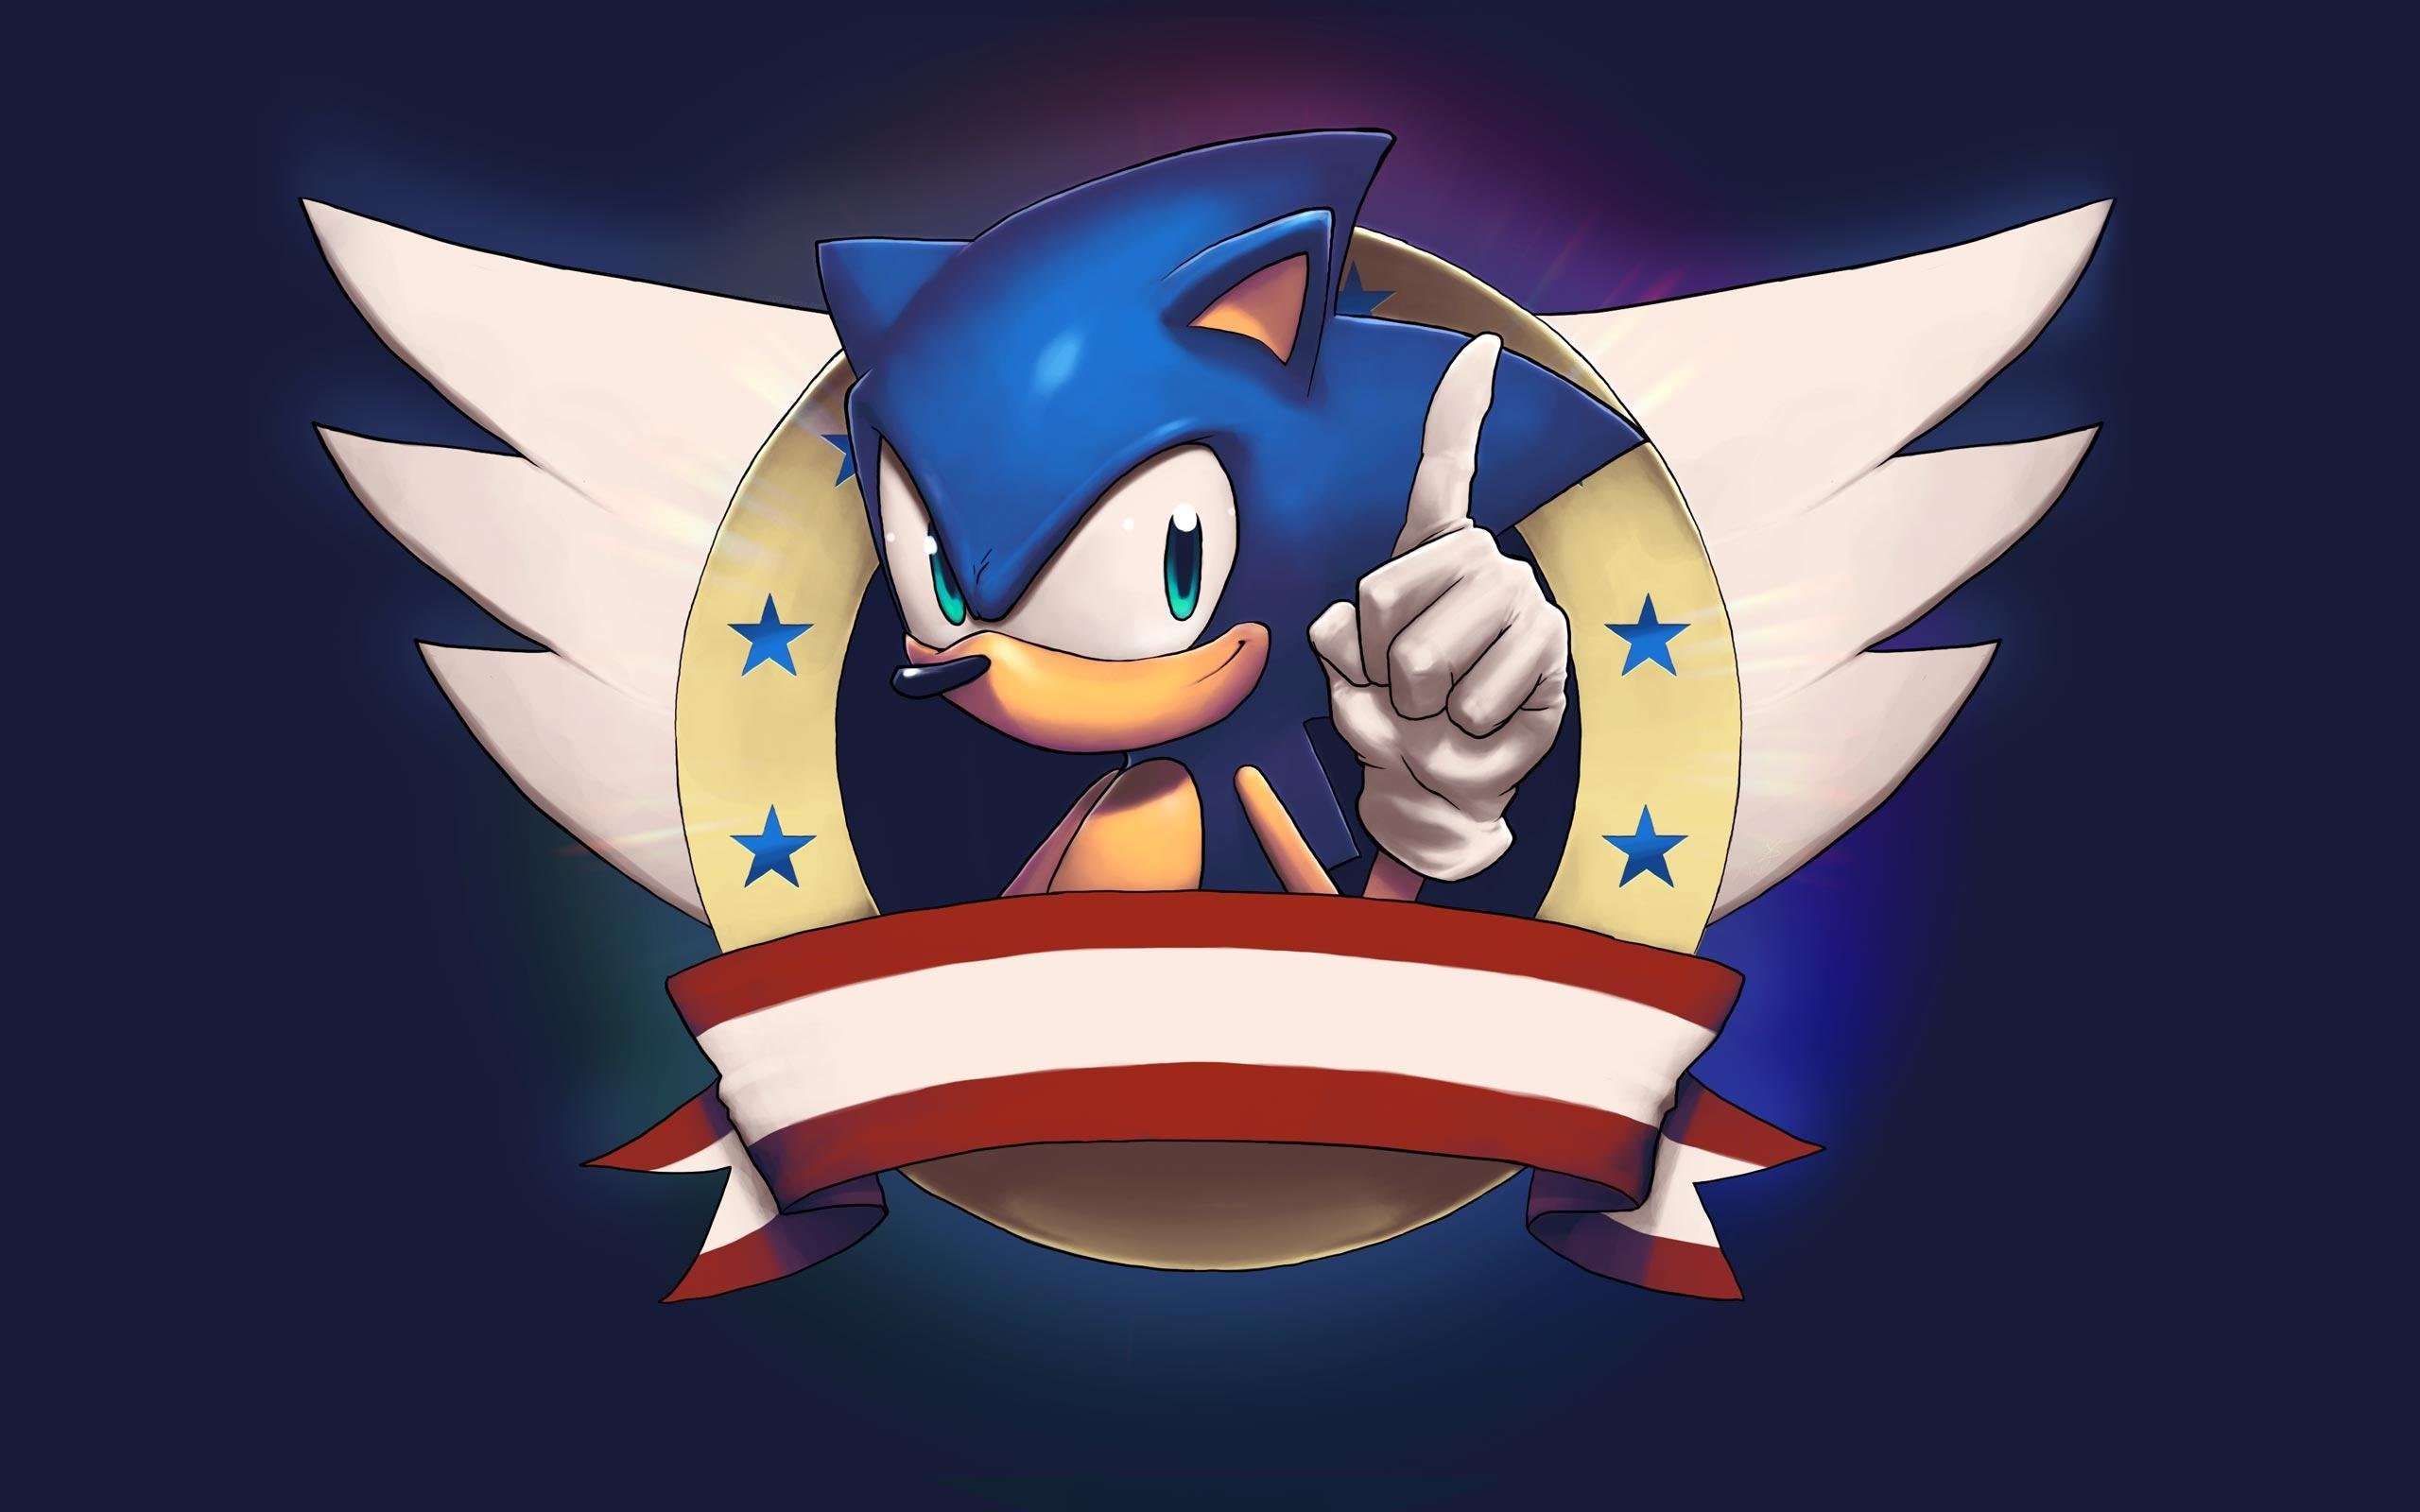 Sonic-The-Hedgehog-Cool-Logo-HD-Wallpaper